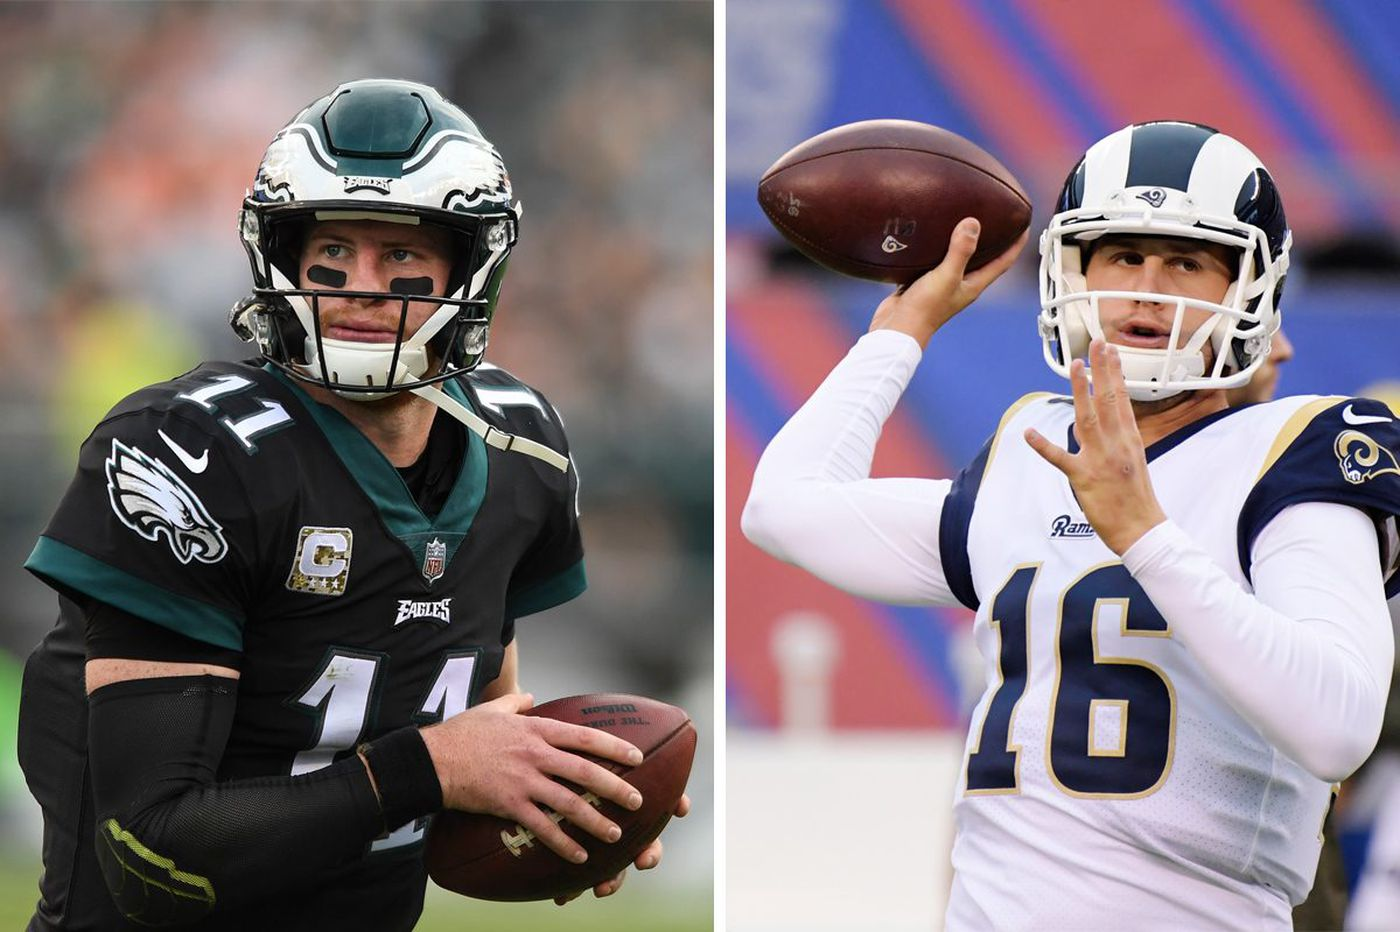 Carson Wentz vs. Jared Goff: 5 years later, who is the better quarterback?